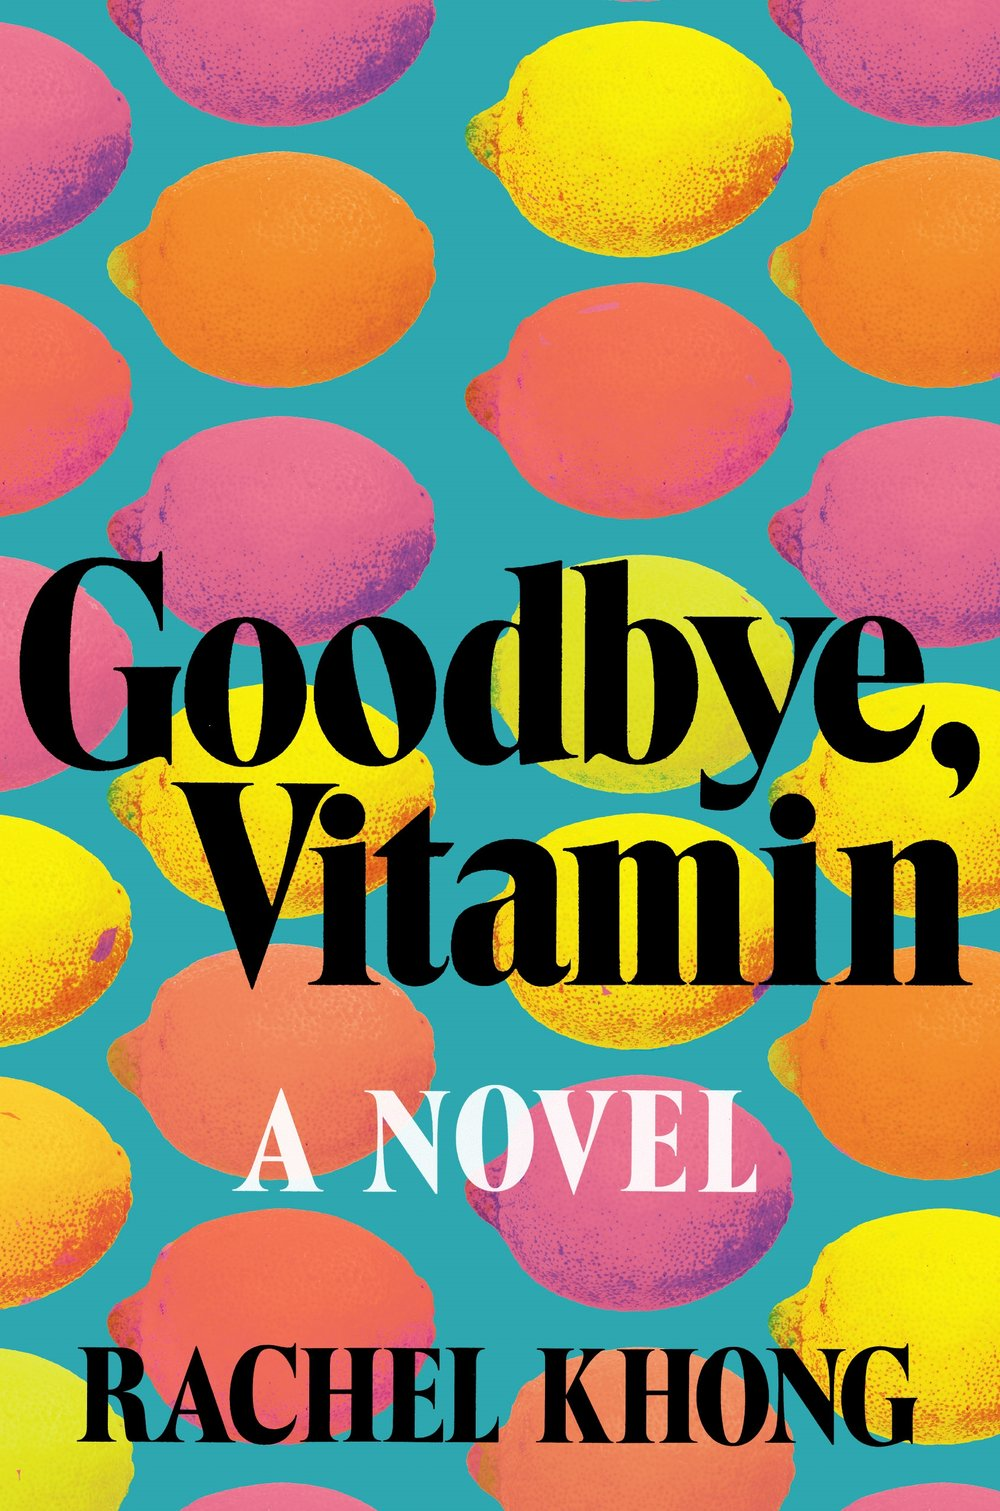 5 Books to Read that will Get You Through April Showers - 1) Goodbye Vitamin by Rachel Khong